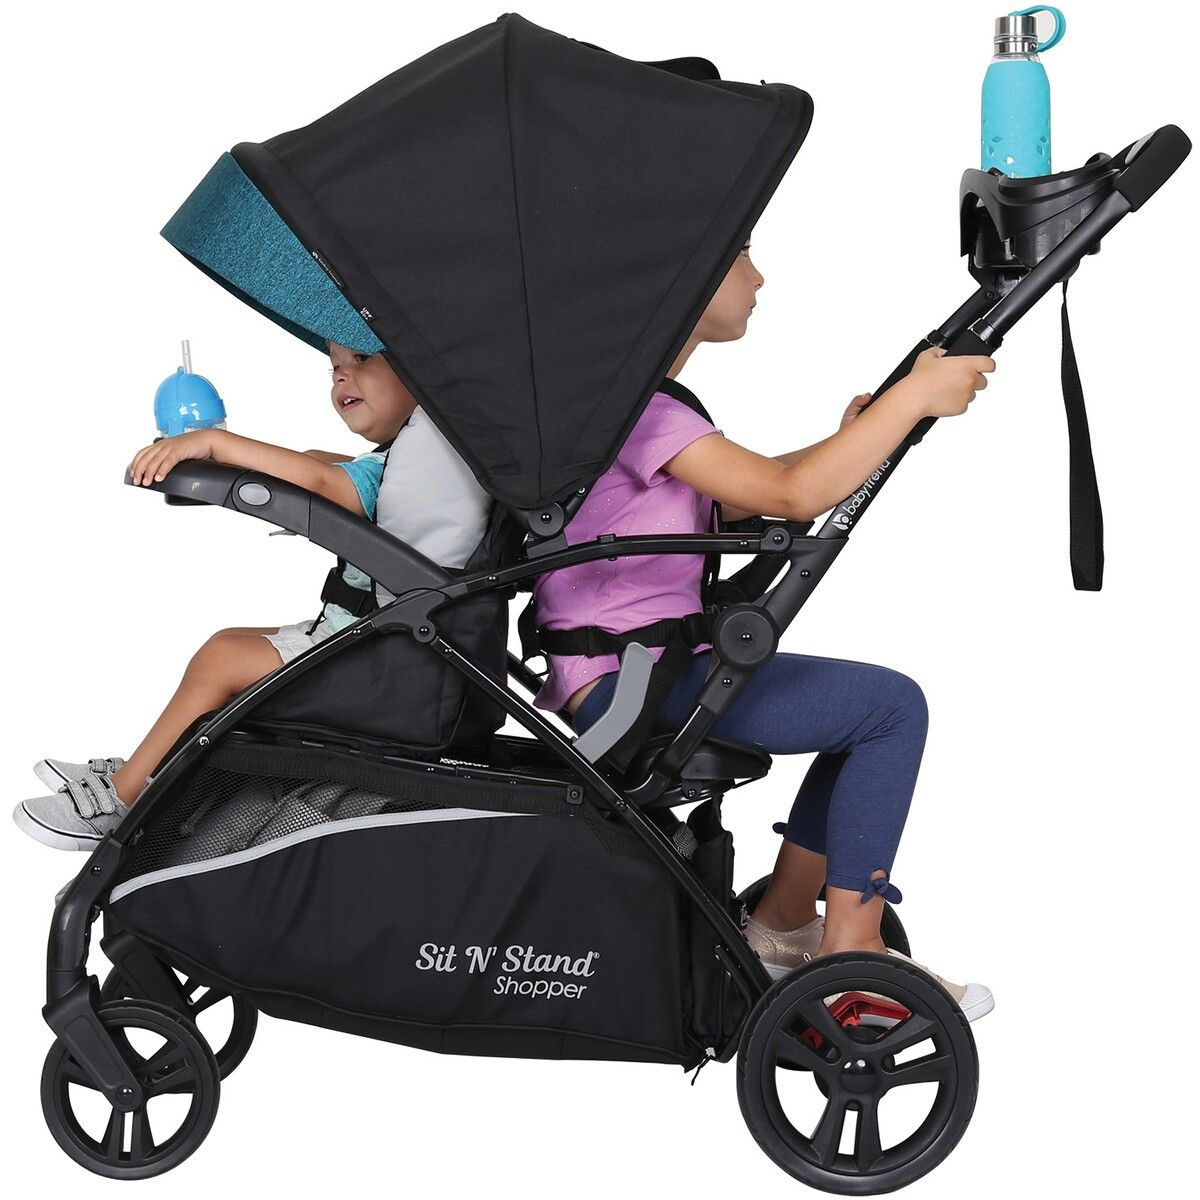 Baby Trend Sit 'n' Stand Shopper Stroller BIG W in 2020